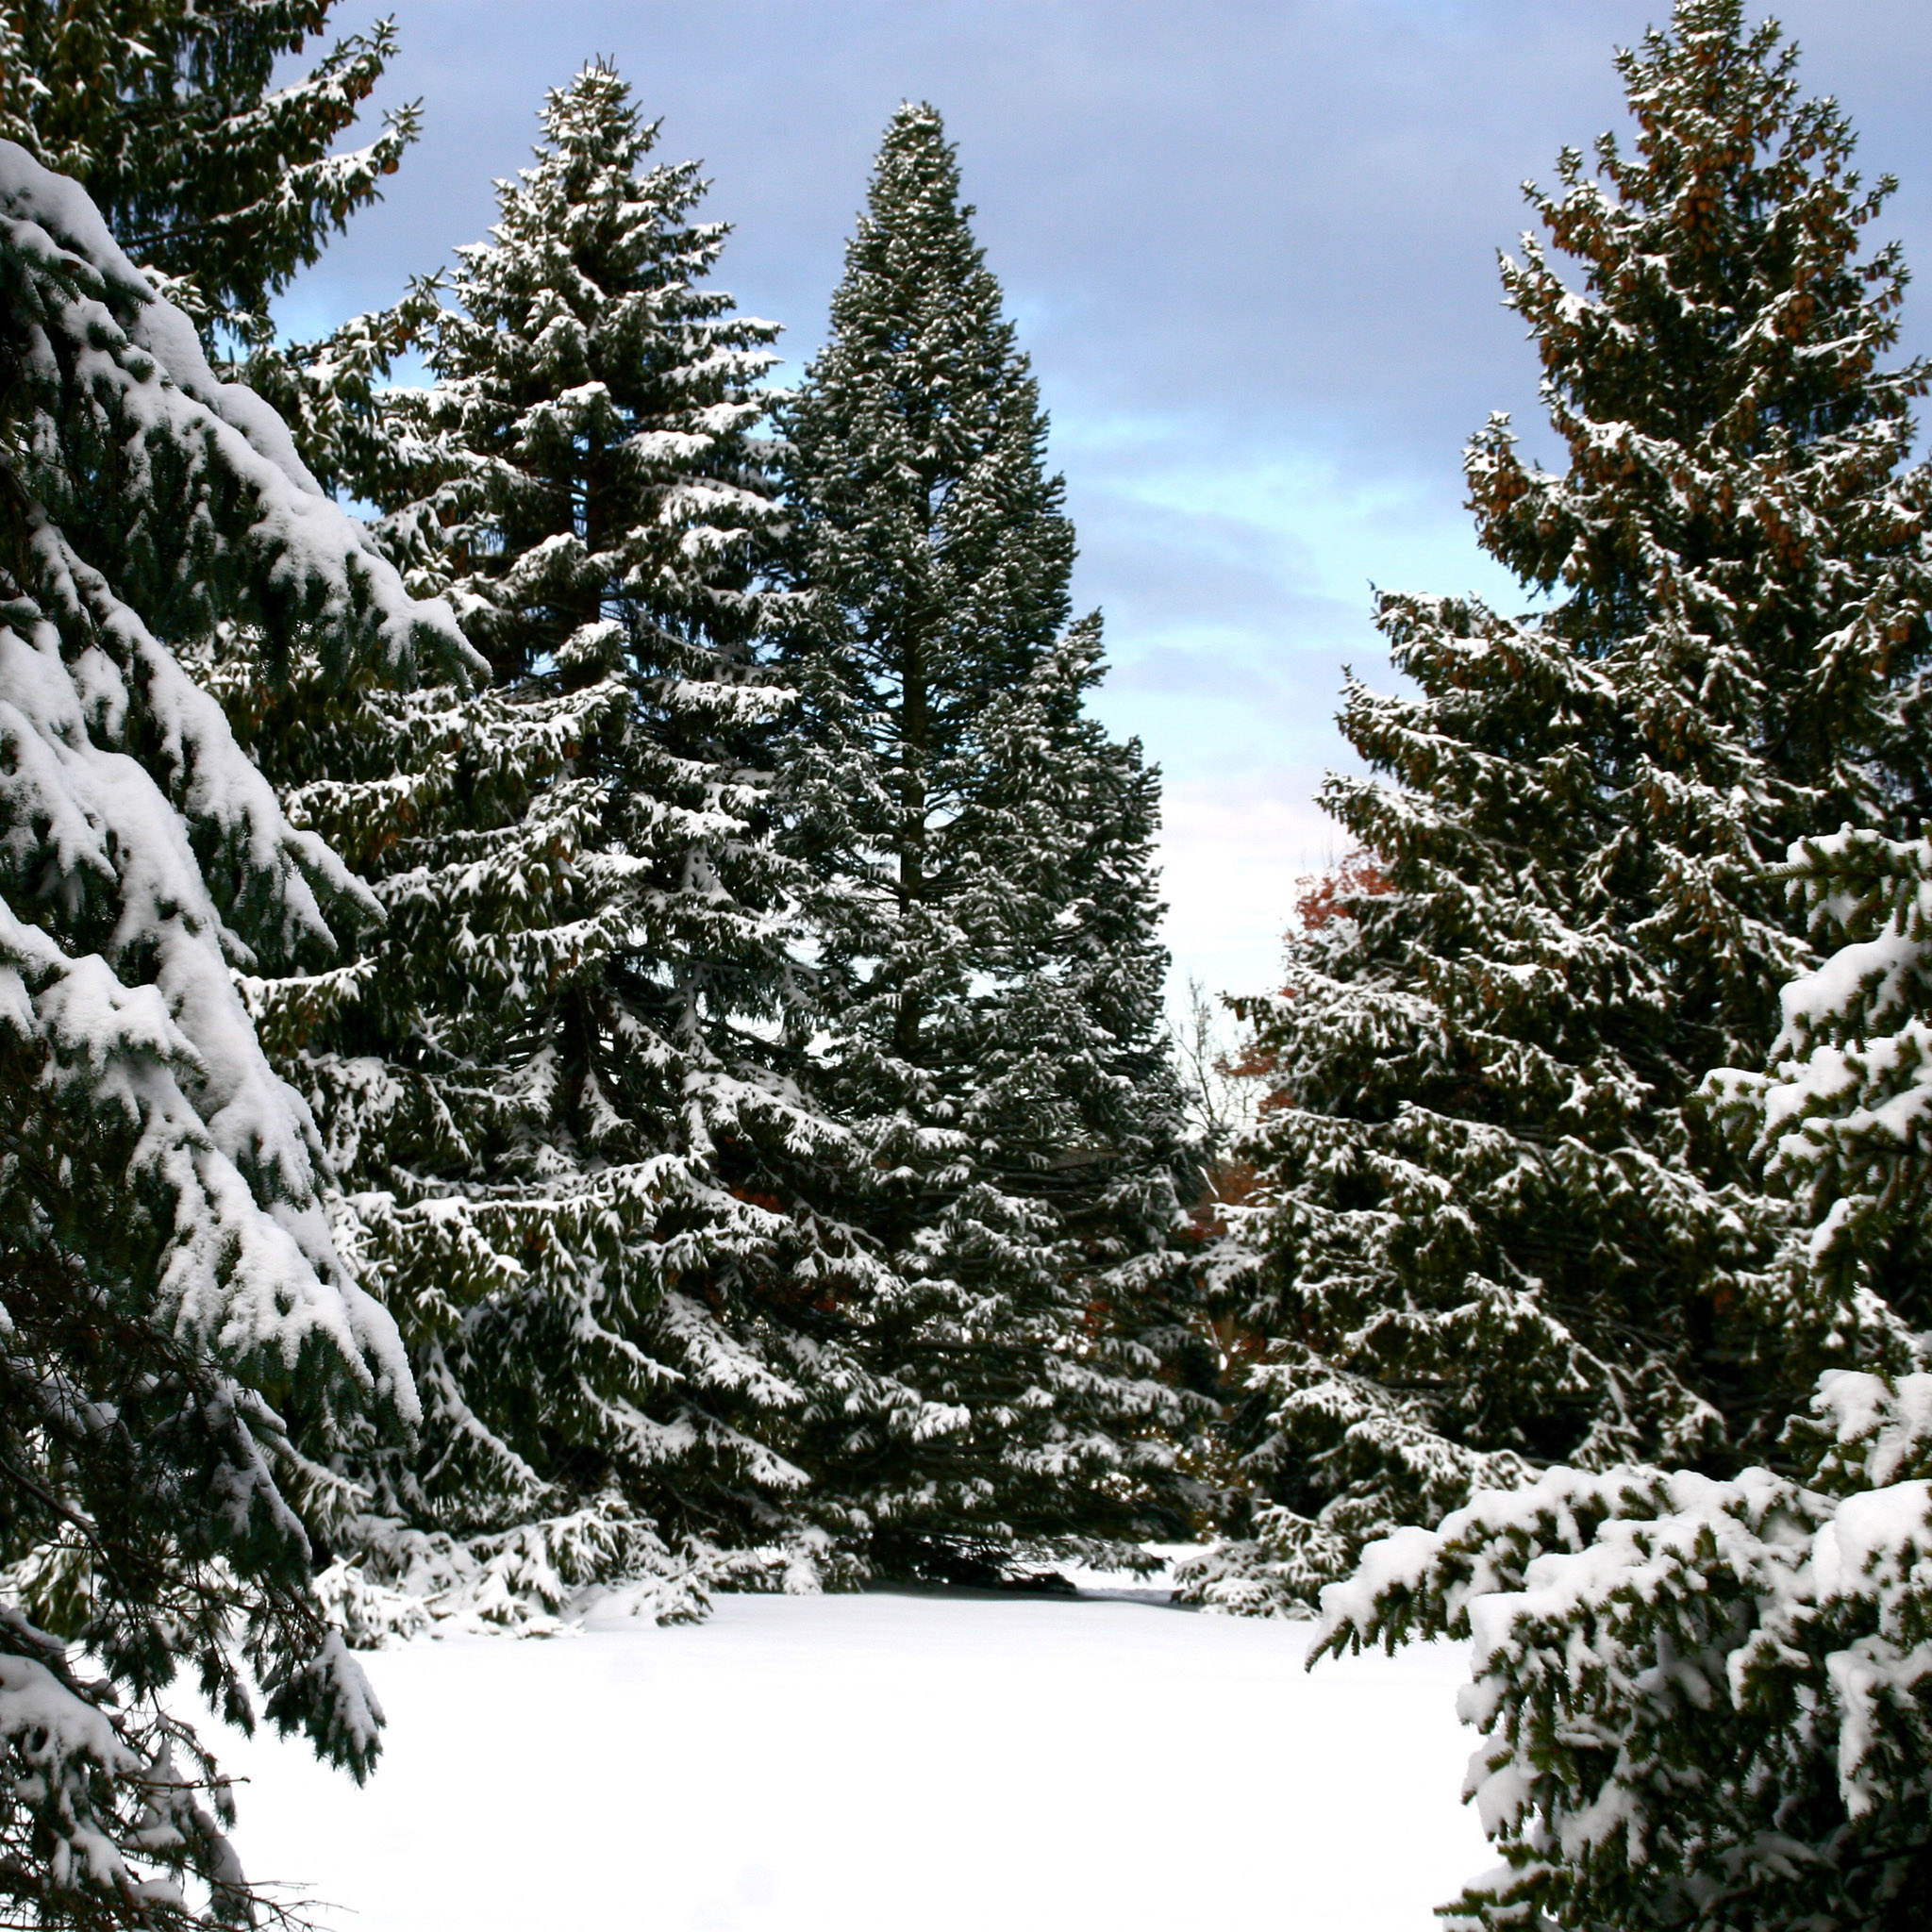 liz west - snowy spruce trees landscape ipad wallpaper